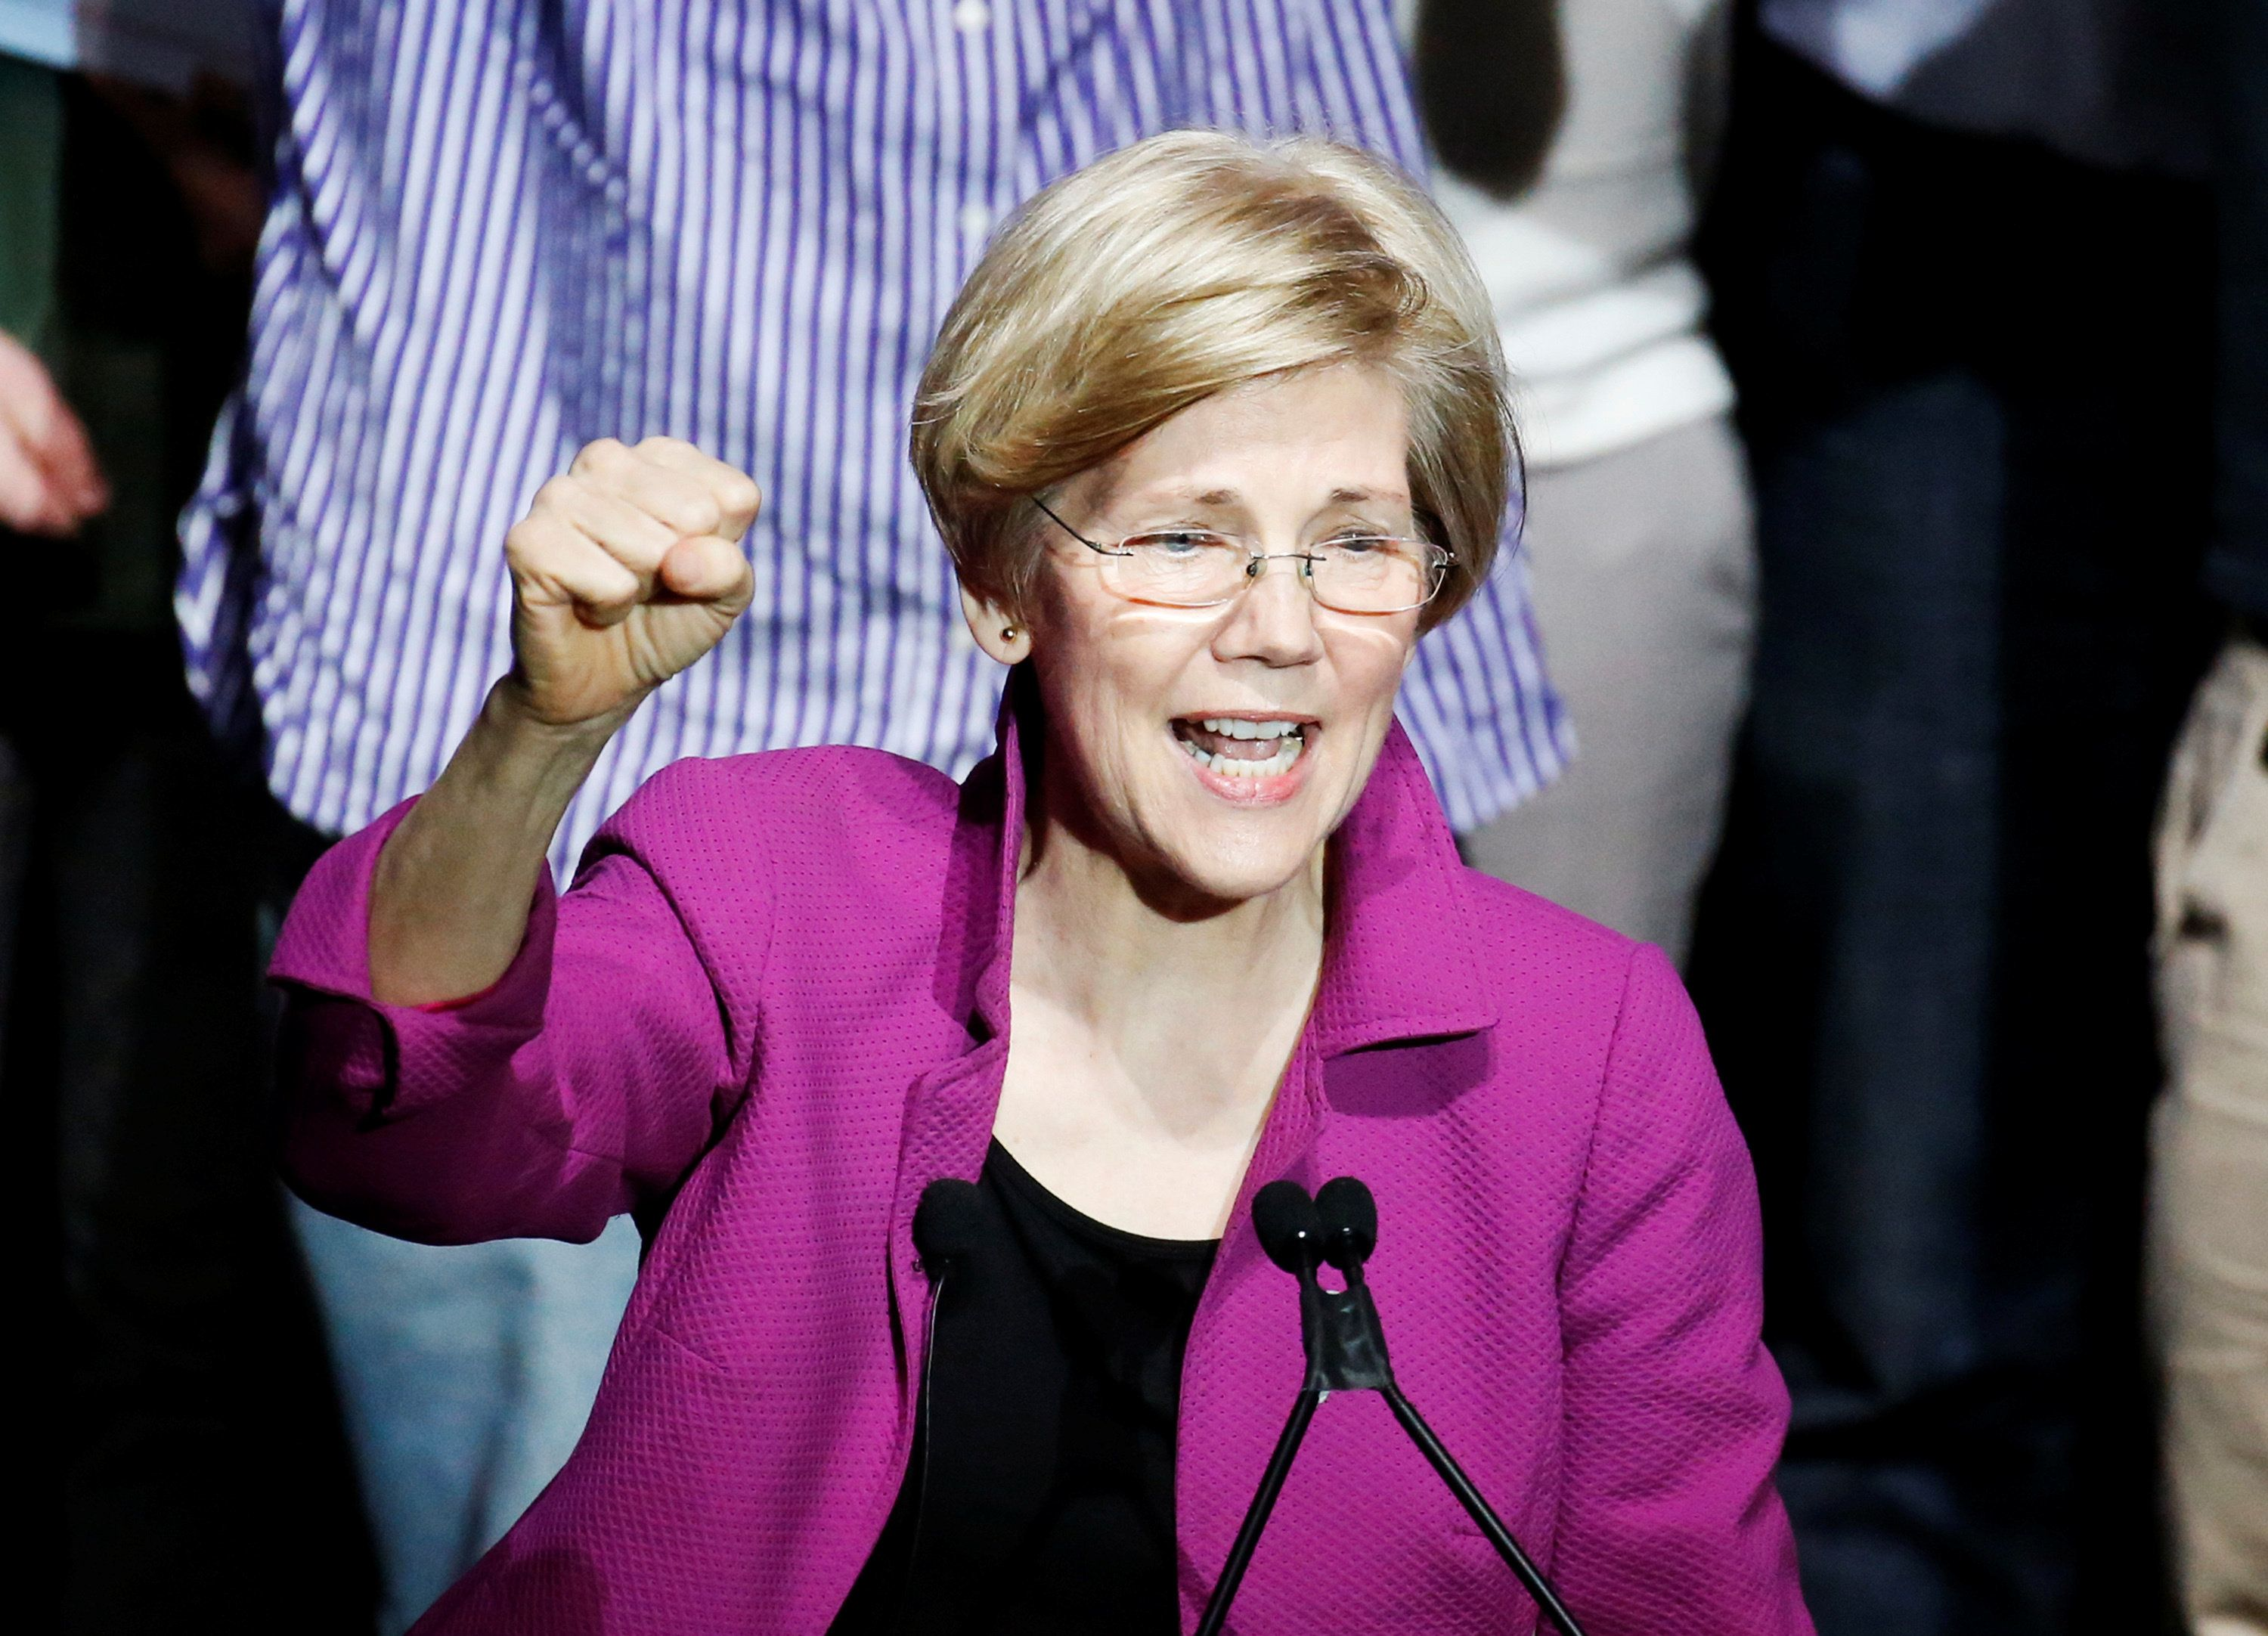 Warren denounced the influence of money in politics and the trend toward corporate consolidation in a passionate speech